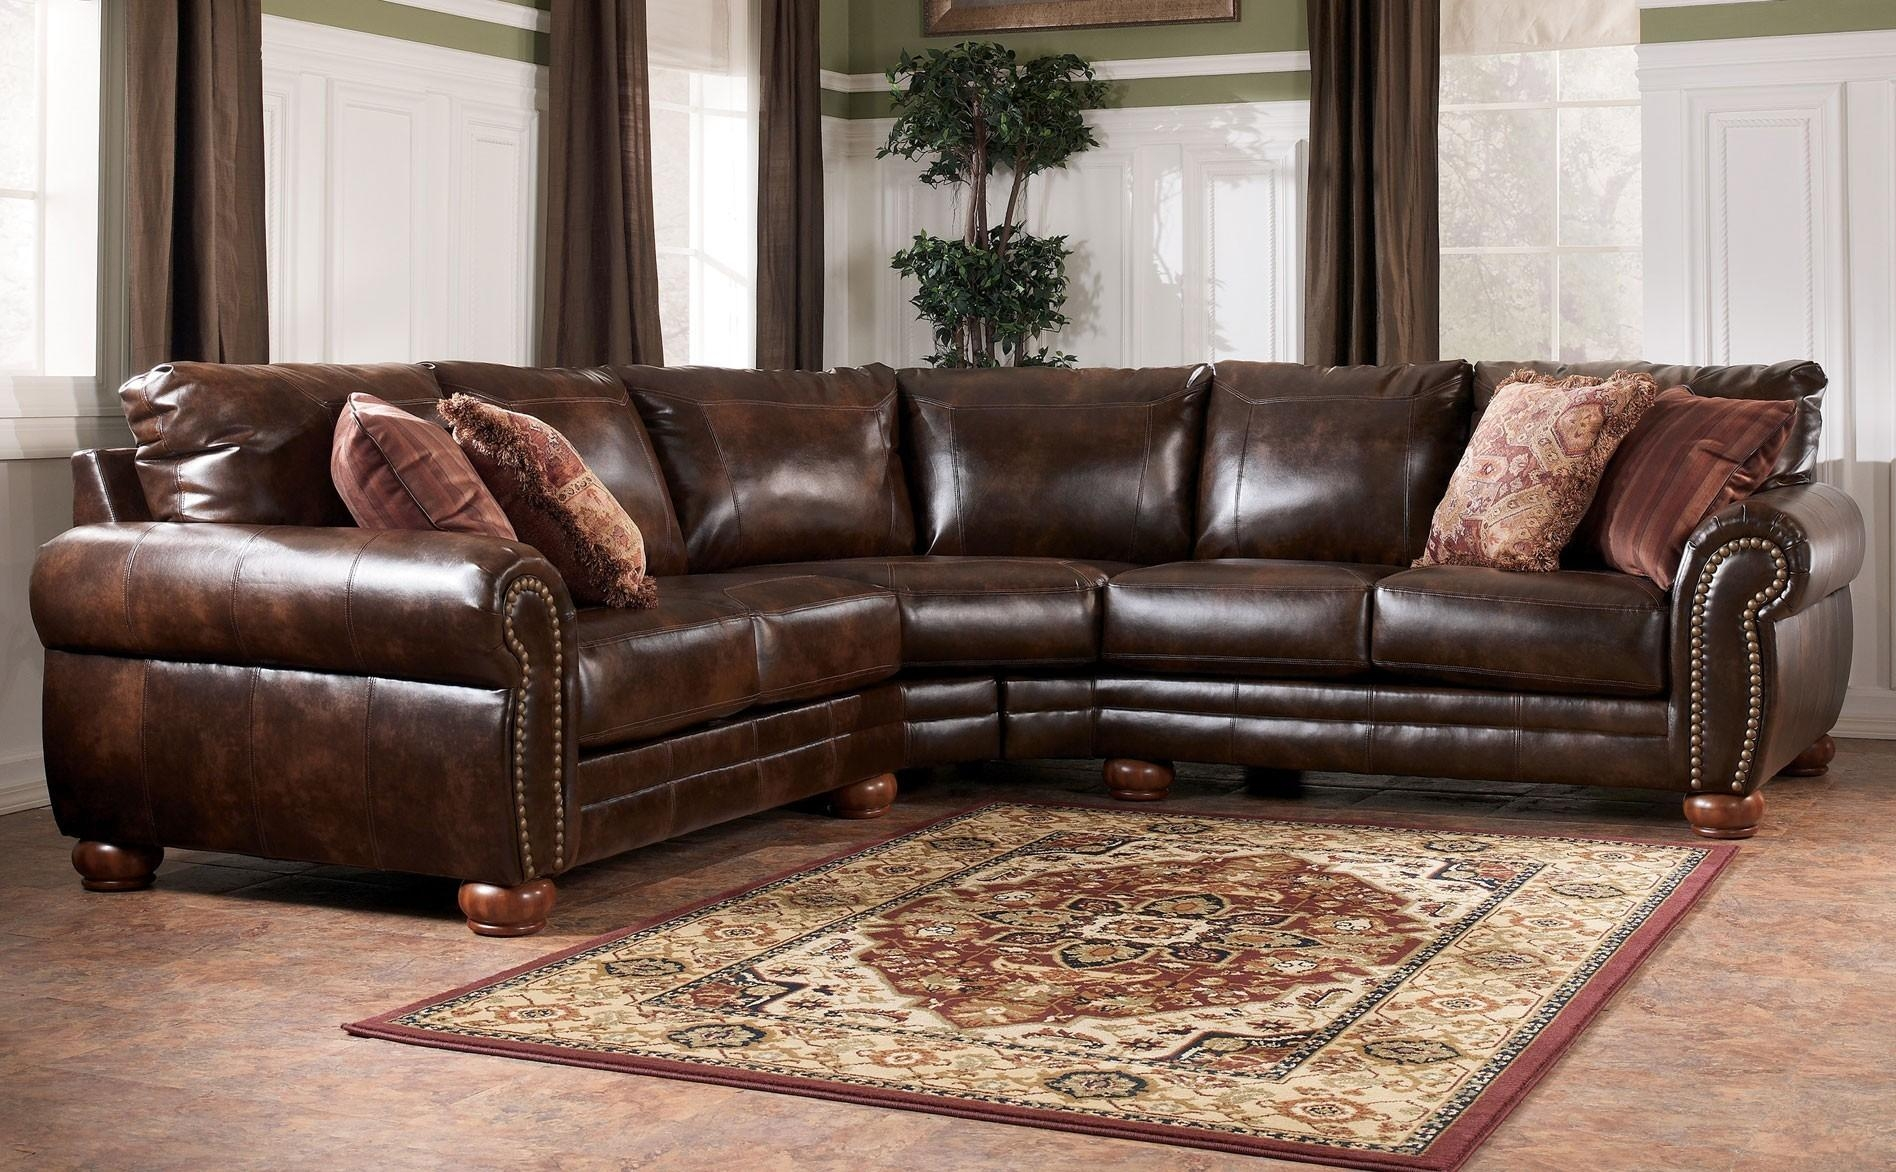 20 Ideas Of Costco Leather Sectional Sofas Sofa Ideas